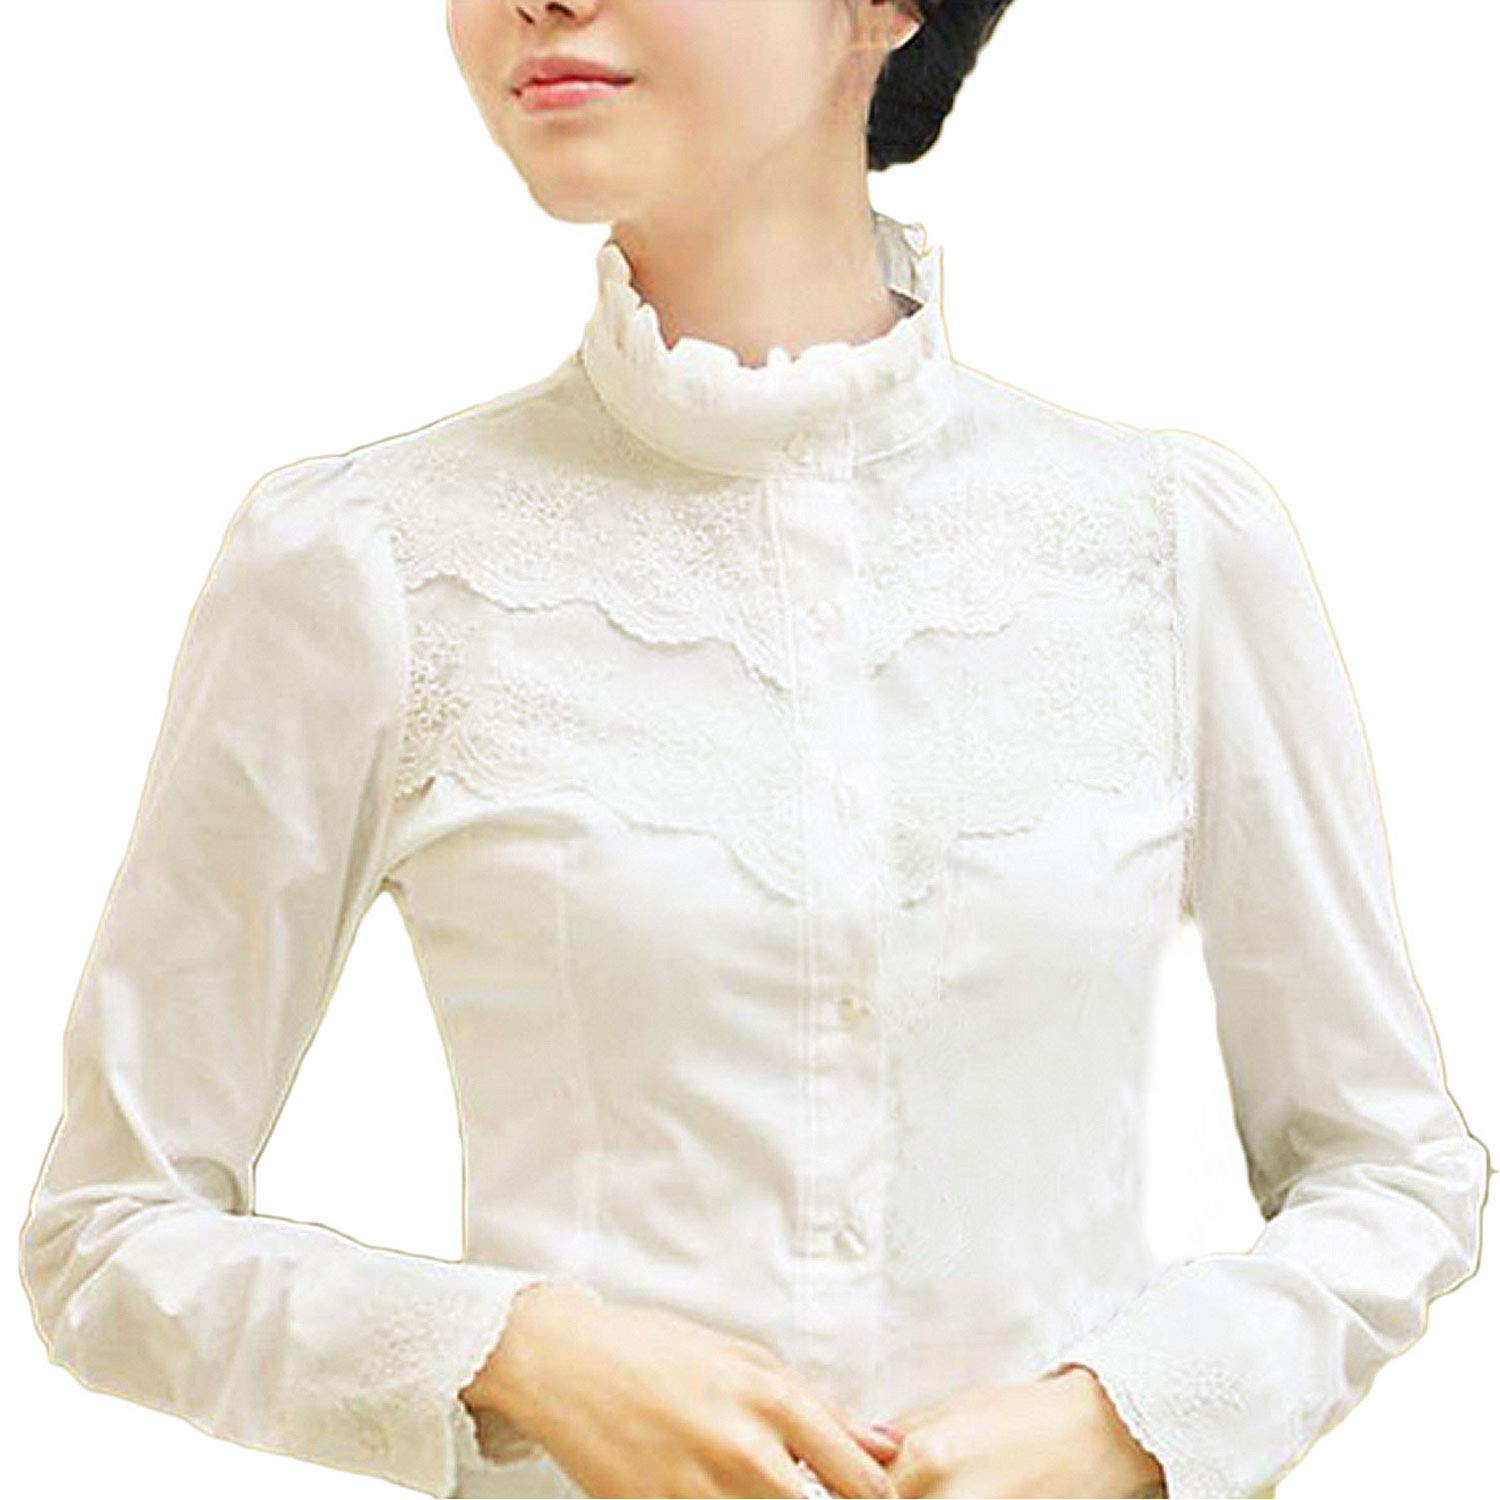 Edwardian Blouses |  Lace Blouses & Sweaters Nonbrand Winter Office Long Sleeve Shirt Lace Top Womens Vintage Blouse Ladies Victorian Tops £15.42 AT vintagedancer.com